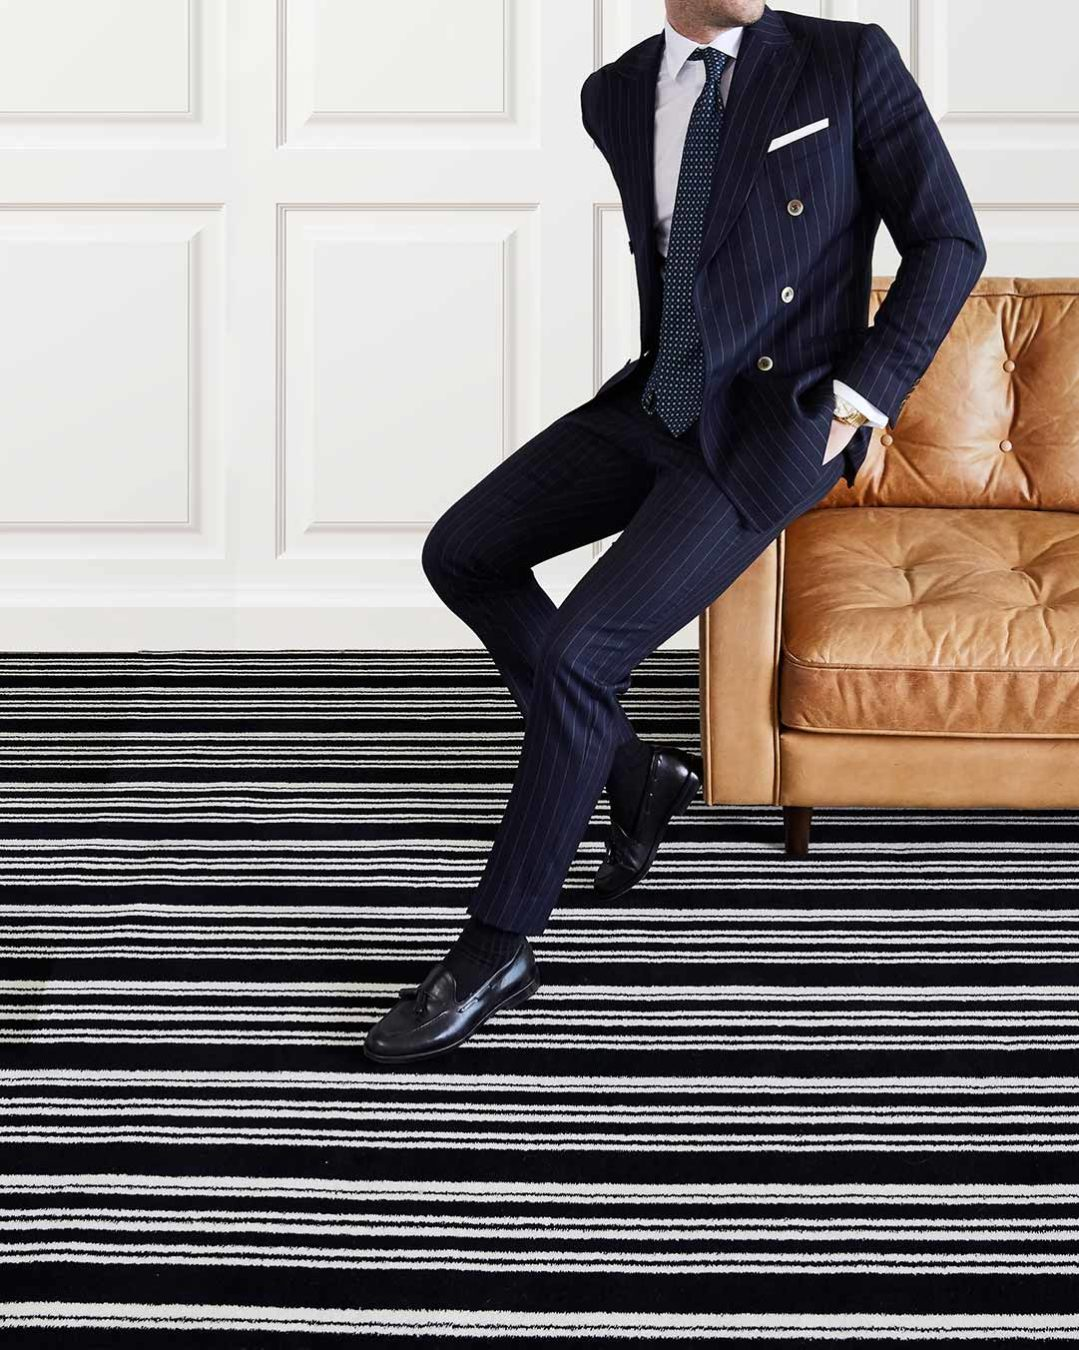 Image of Leith black and white striped Axminster carpet in living room